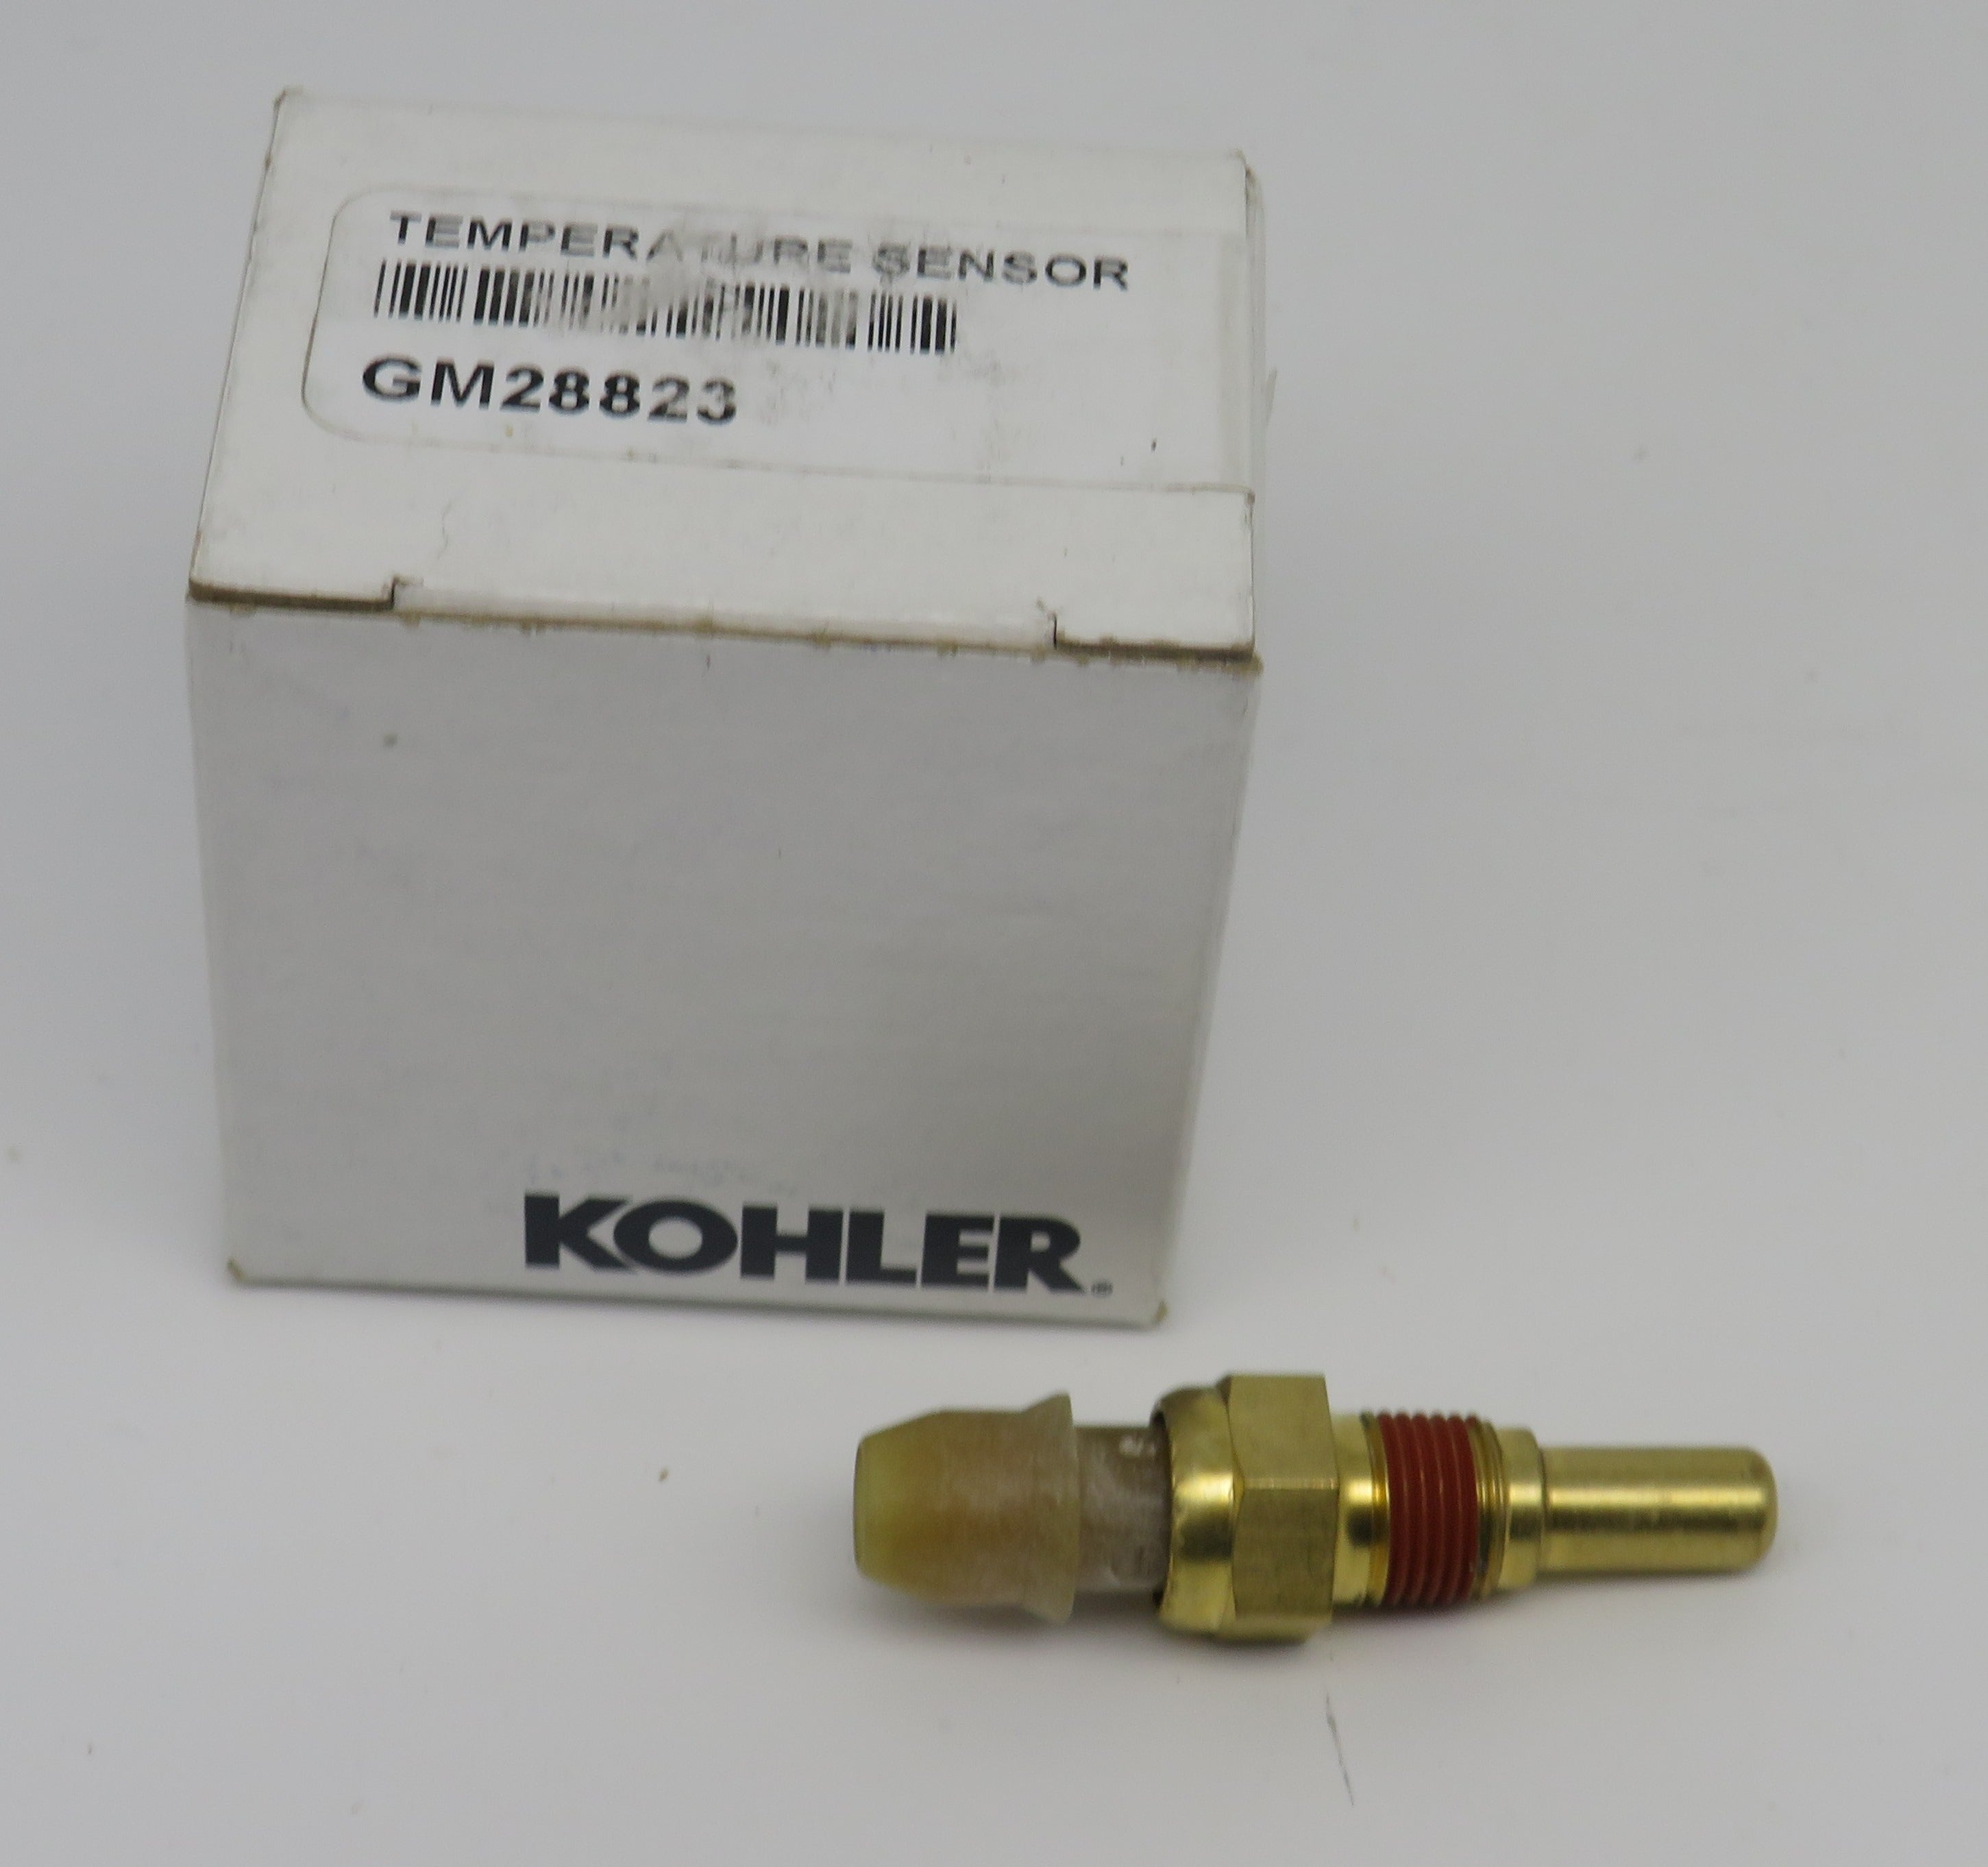 GM28823 Kohler Temperature Sensor